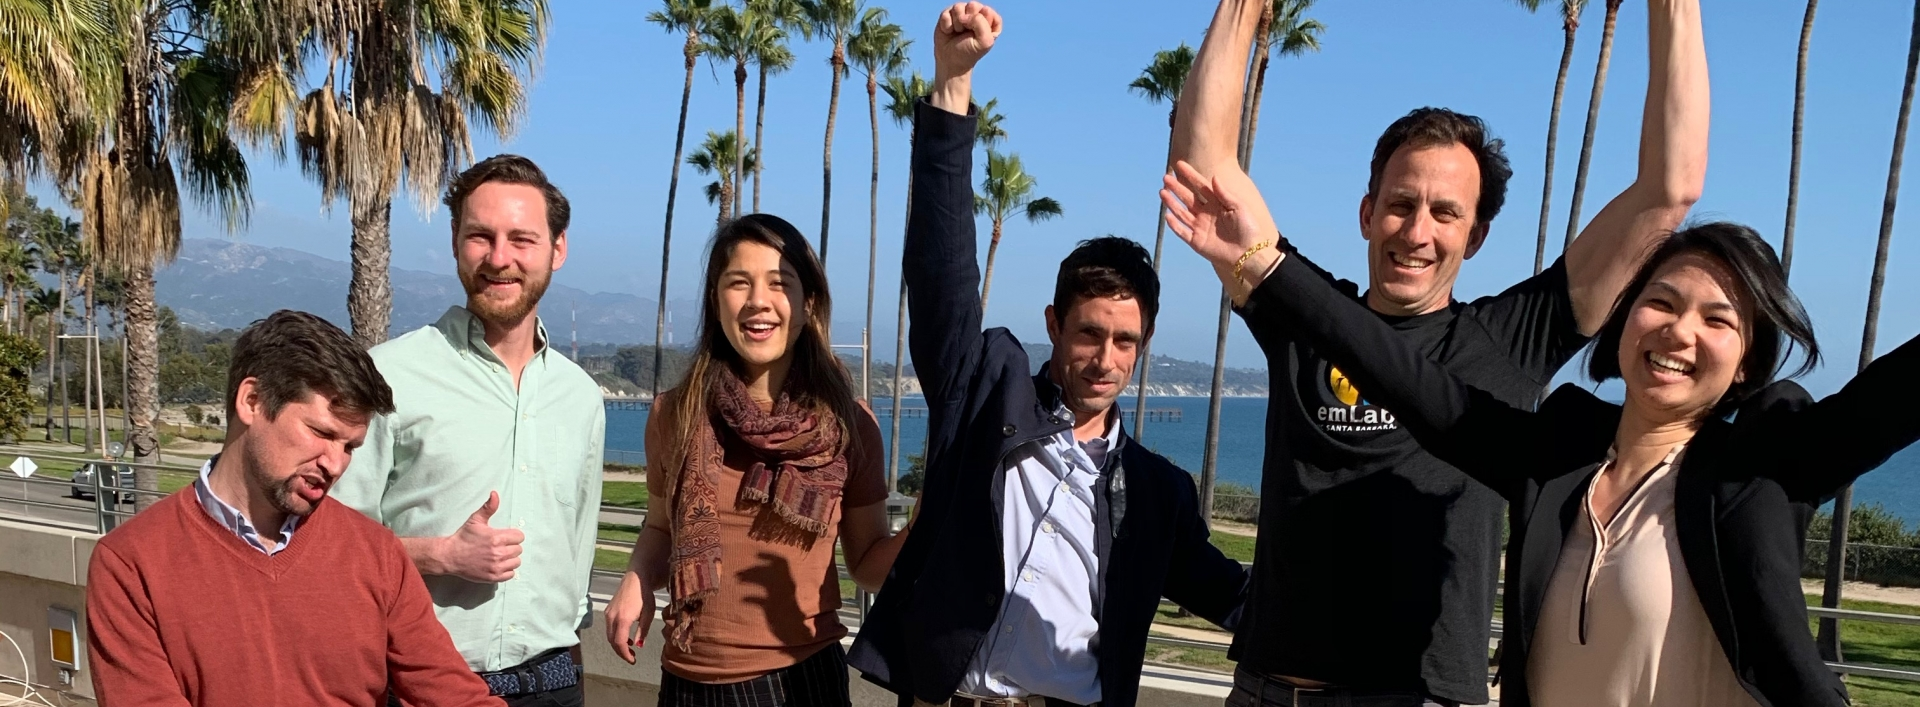 Six students cheering in happiness with ocean view